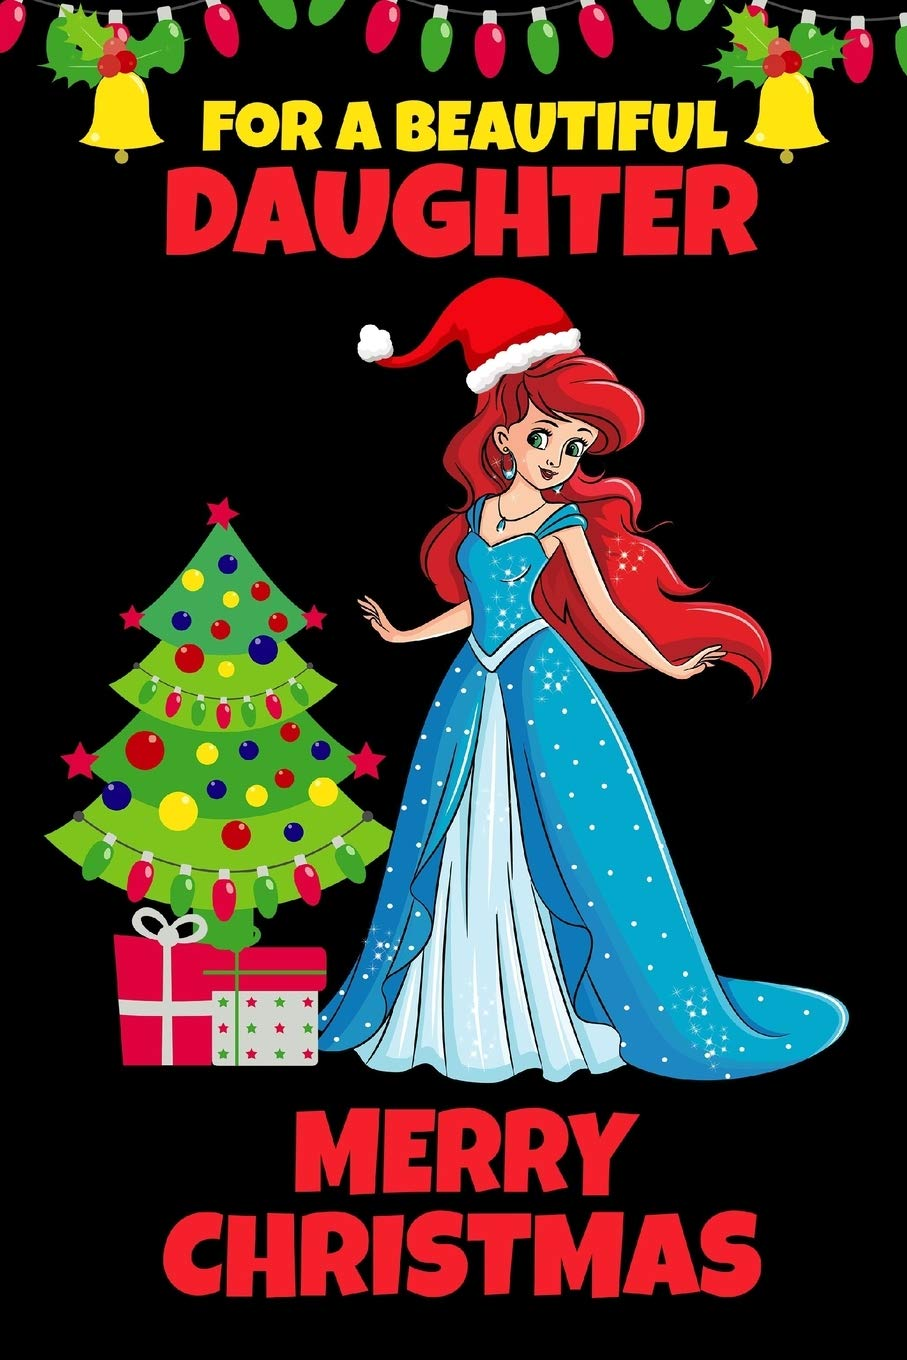 Buy For A Beautiful Daughter Princess Christmas Gifts For Girls Ages 4 9 Year Old Blank Lined Journal To Write In Alternative To Card Book Online At Low Prices In India For A